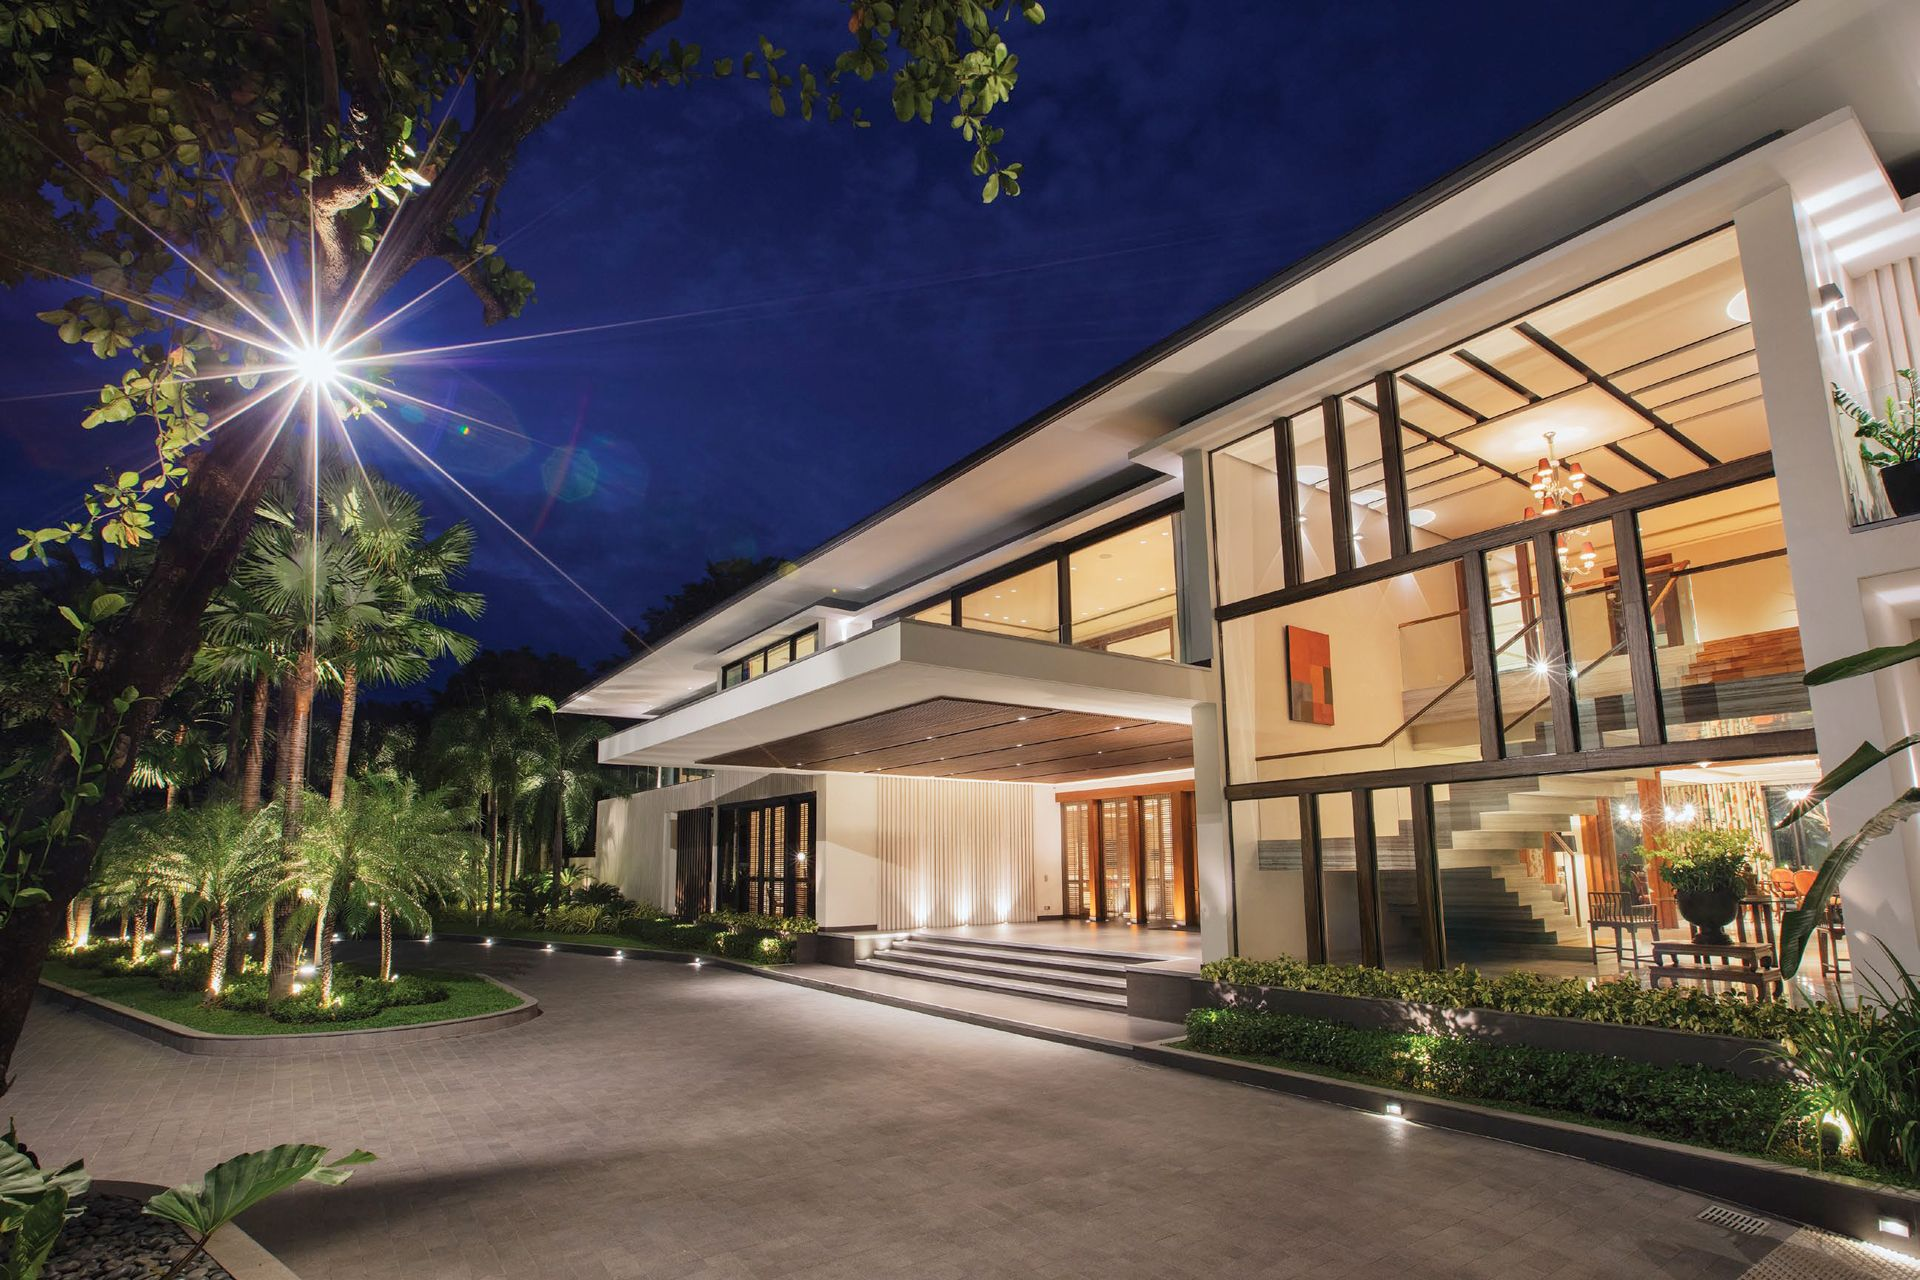 Home Tour: Nature Is At The Core Of This Elegant Suburban House